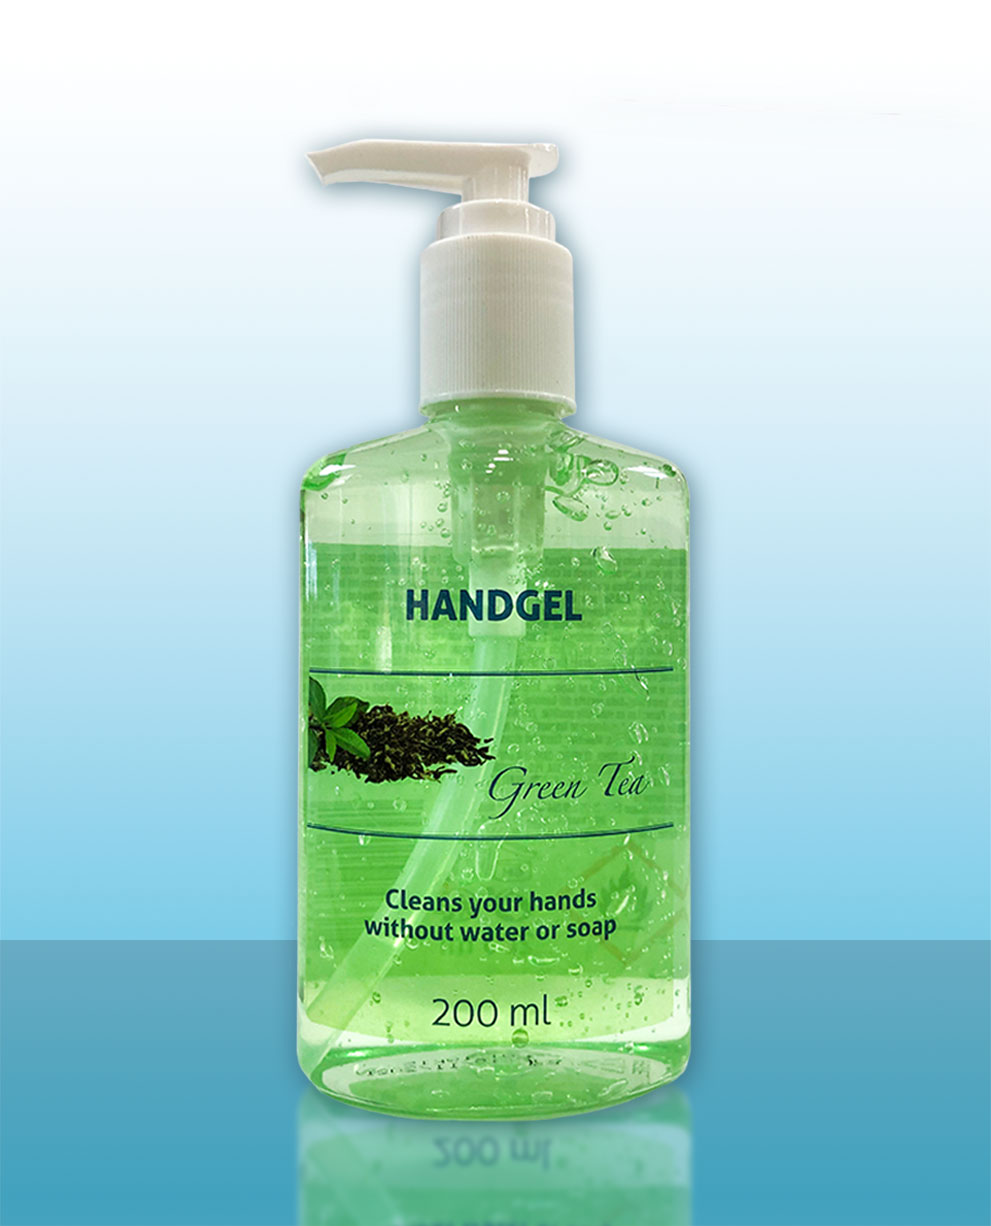 Handgel-greentea-200ml-bakingsoda-nl